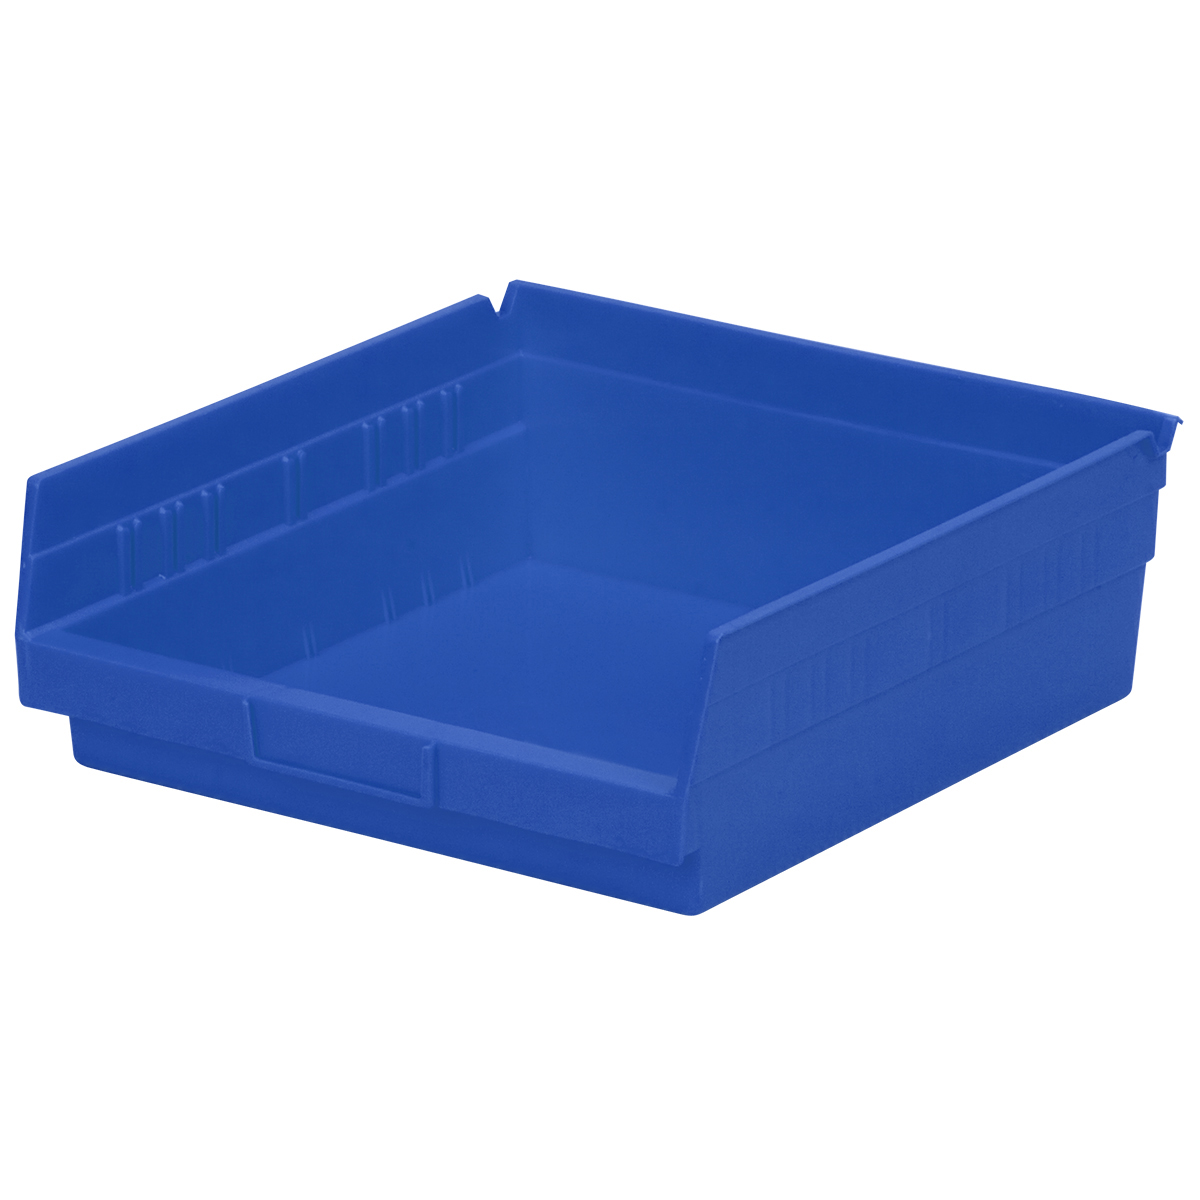 Shelf Bin 11-5/8 x 11-1/8 x 4, Blue (30170BLUE).  This item sold in carton quantities of 12.